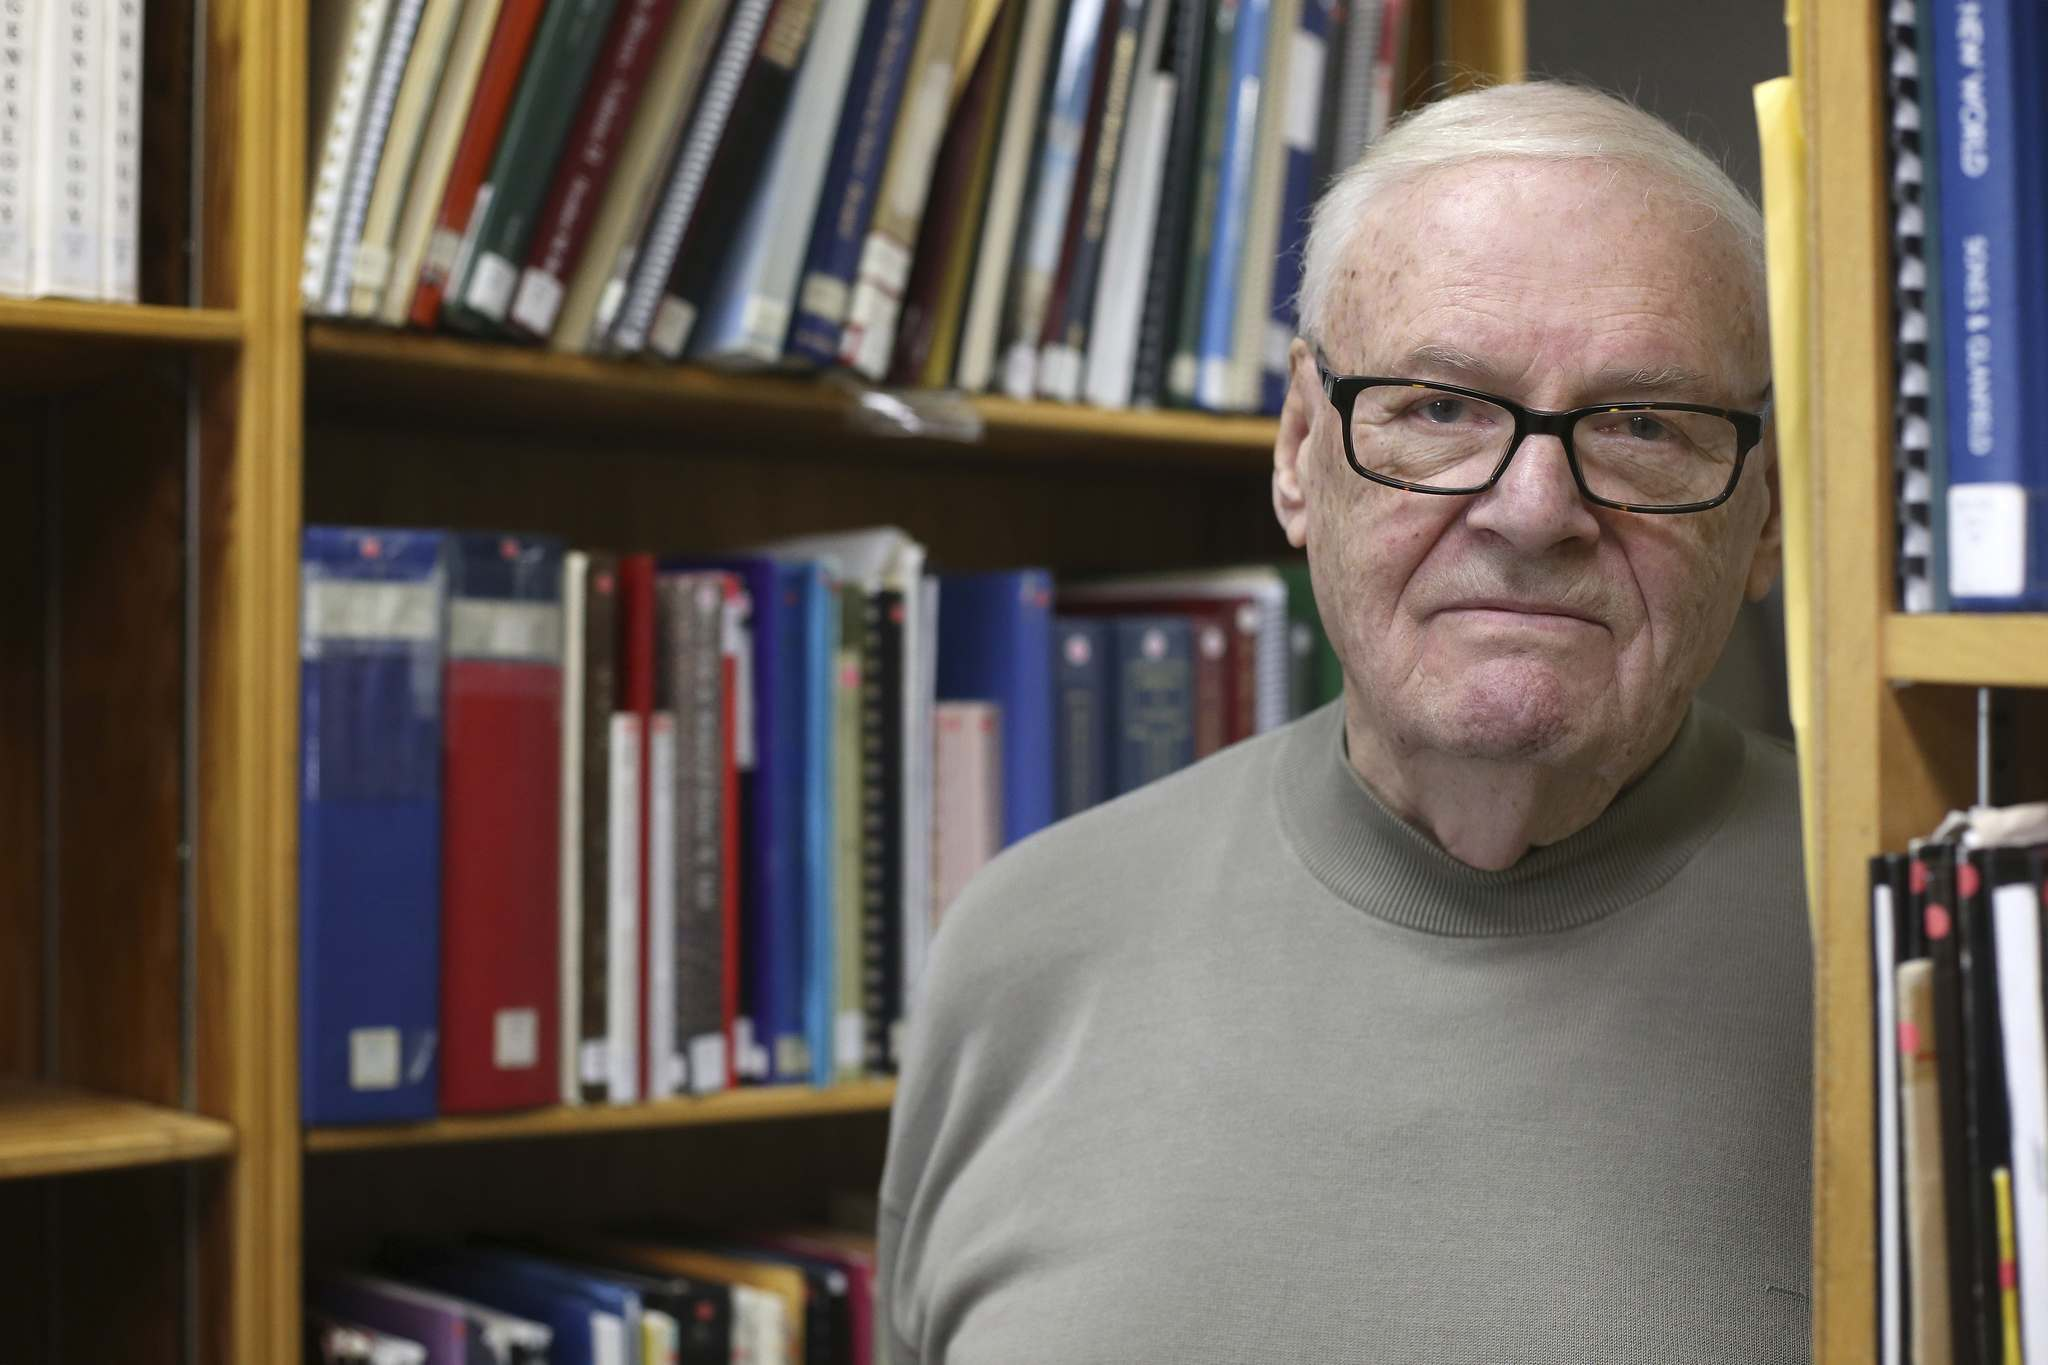 Jim Rutherford stands among shelves of research material at the Manitoba Genealogical Society library and resource centre on St. James Street. Rutherford is the group's volunteer head of research.</p></p>